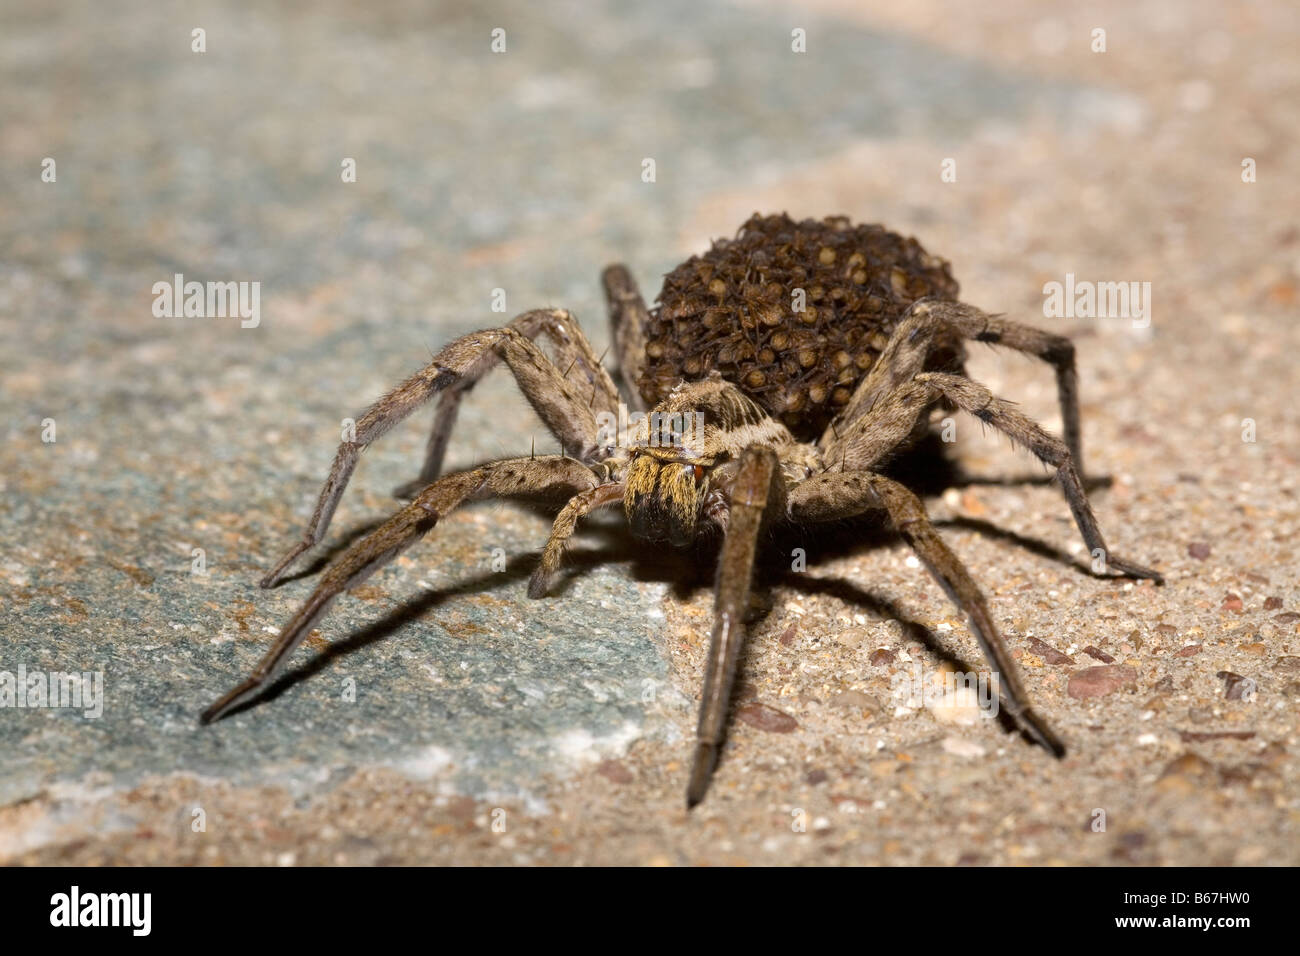 Female Wolf Spider Lycosa narbonensis carrying hundreds of spiderlings on her back Peloponnese Greece - Stock Image